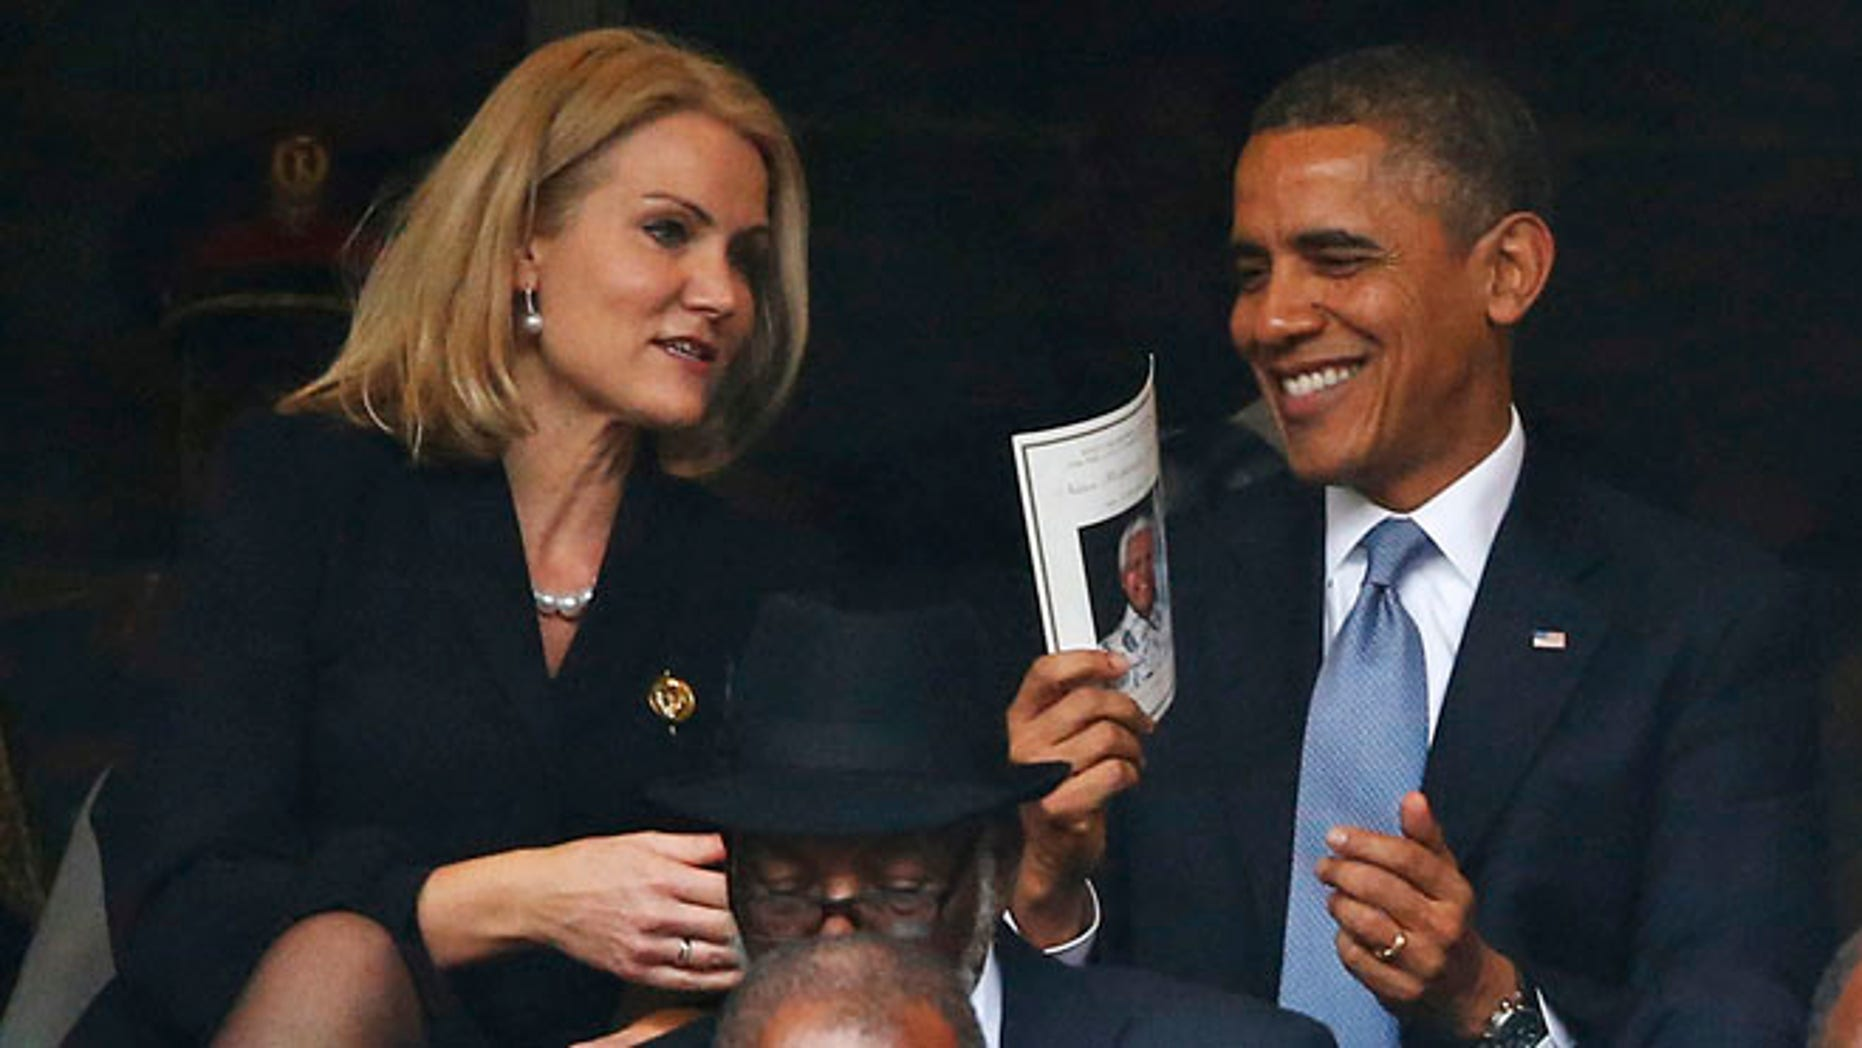 Dec. 10, 2013: President Barack Obama laughs with Danish prime minister, Helle Thorning-Schmidt, during the memorial service for former South African president Nelson Mandela at the FNB Stadium in Soweto, near Johannesburg, South Africa.